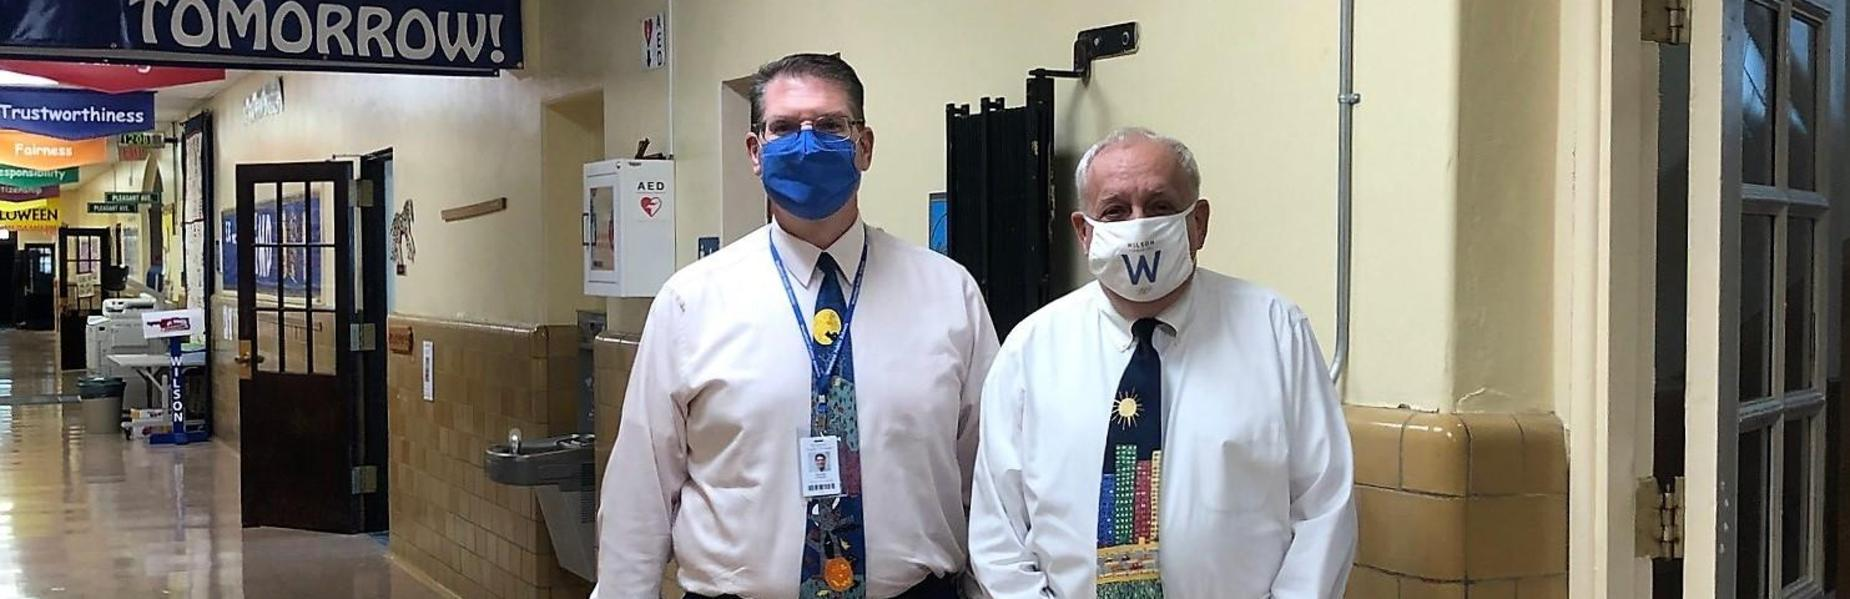 Photo of Wilson guidance counselor and principal wearing masks.